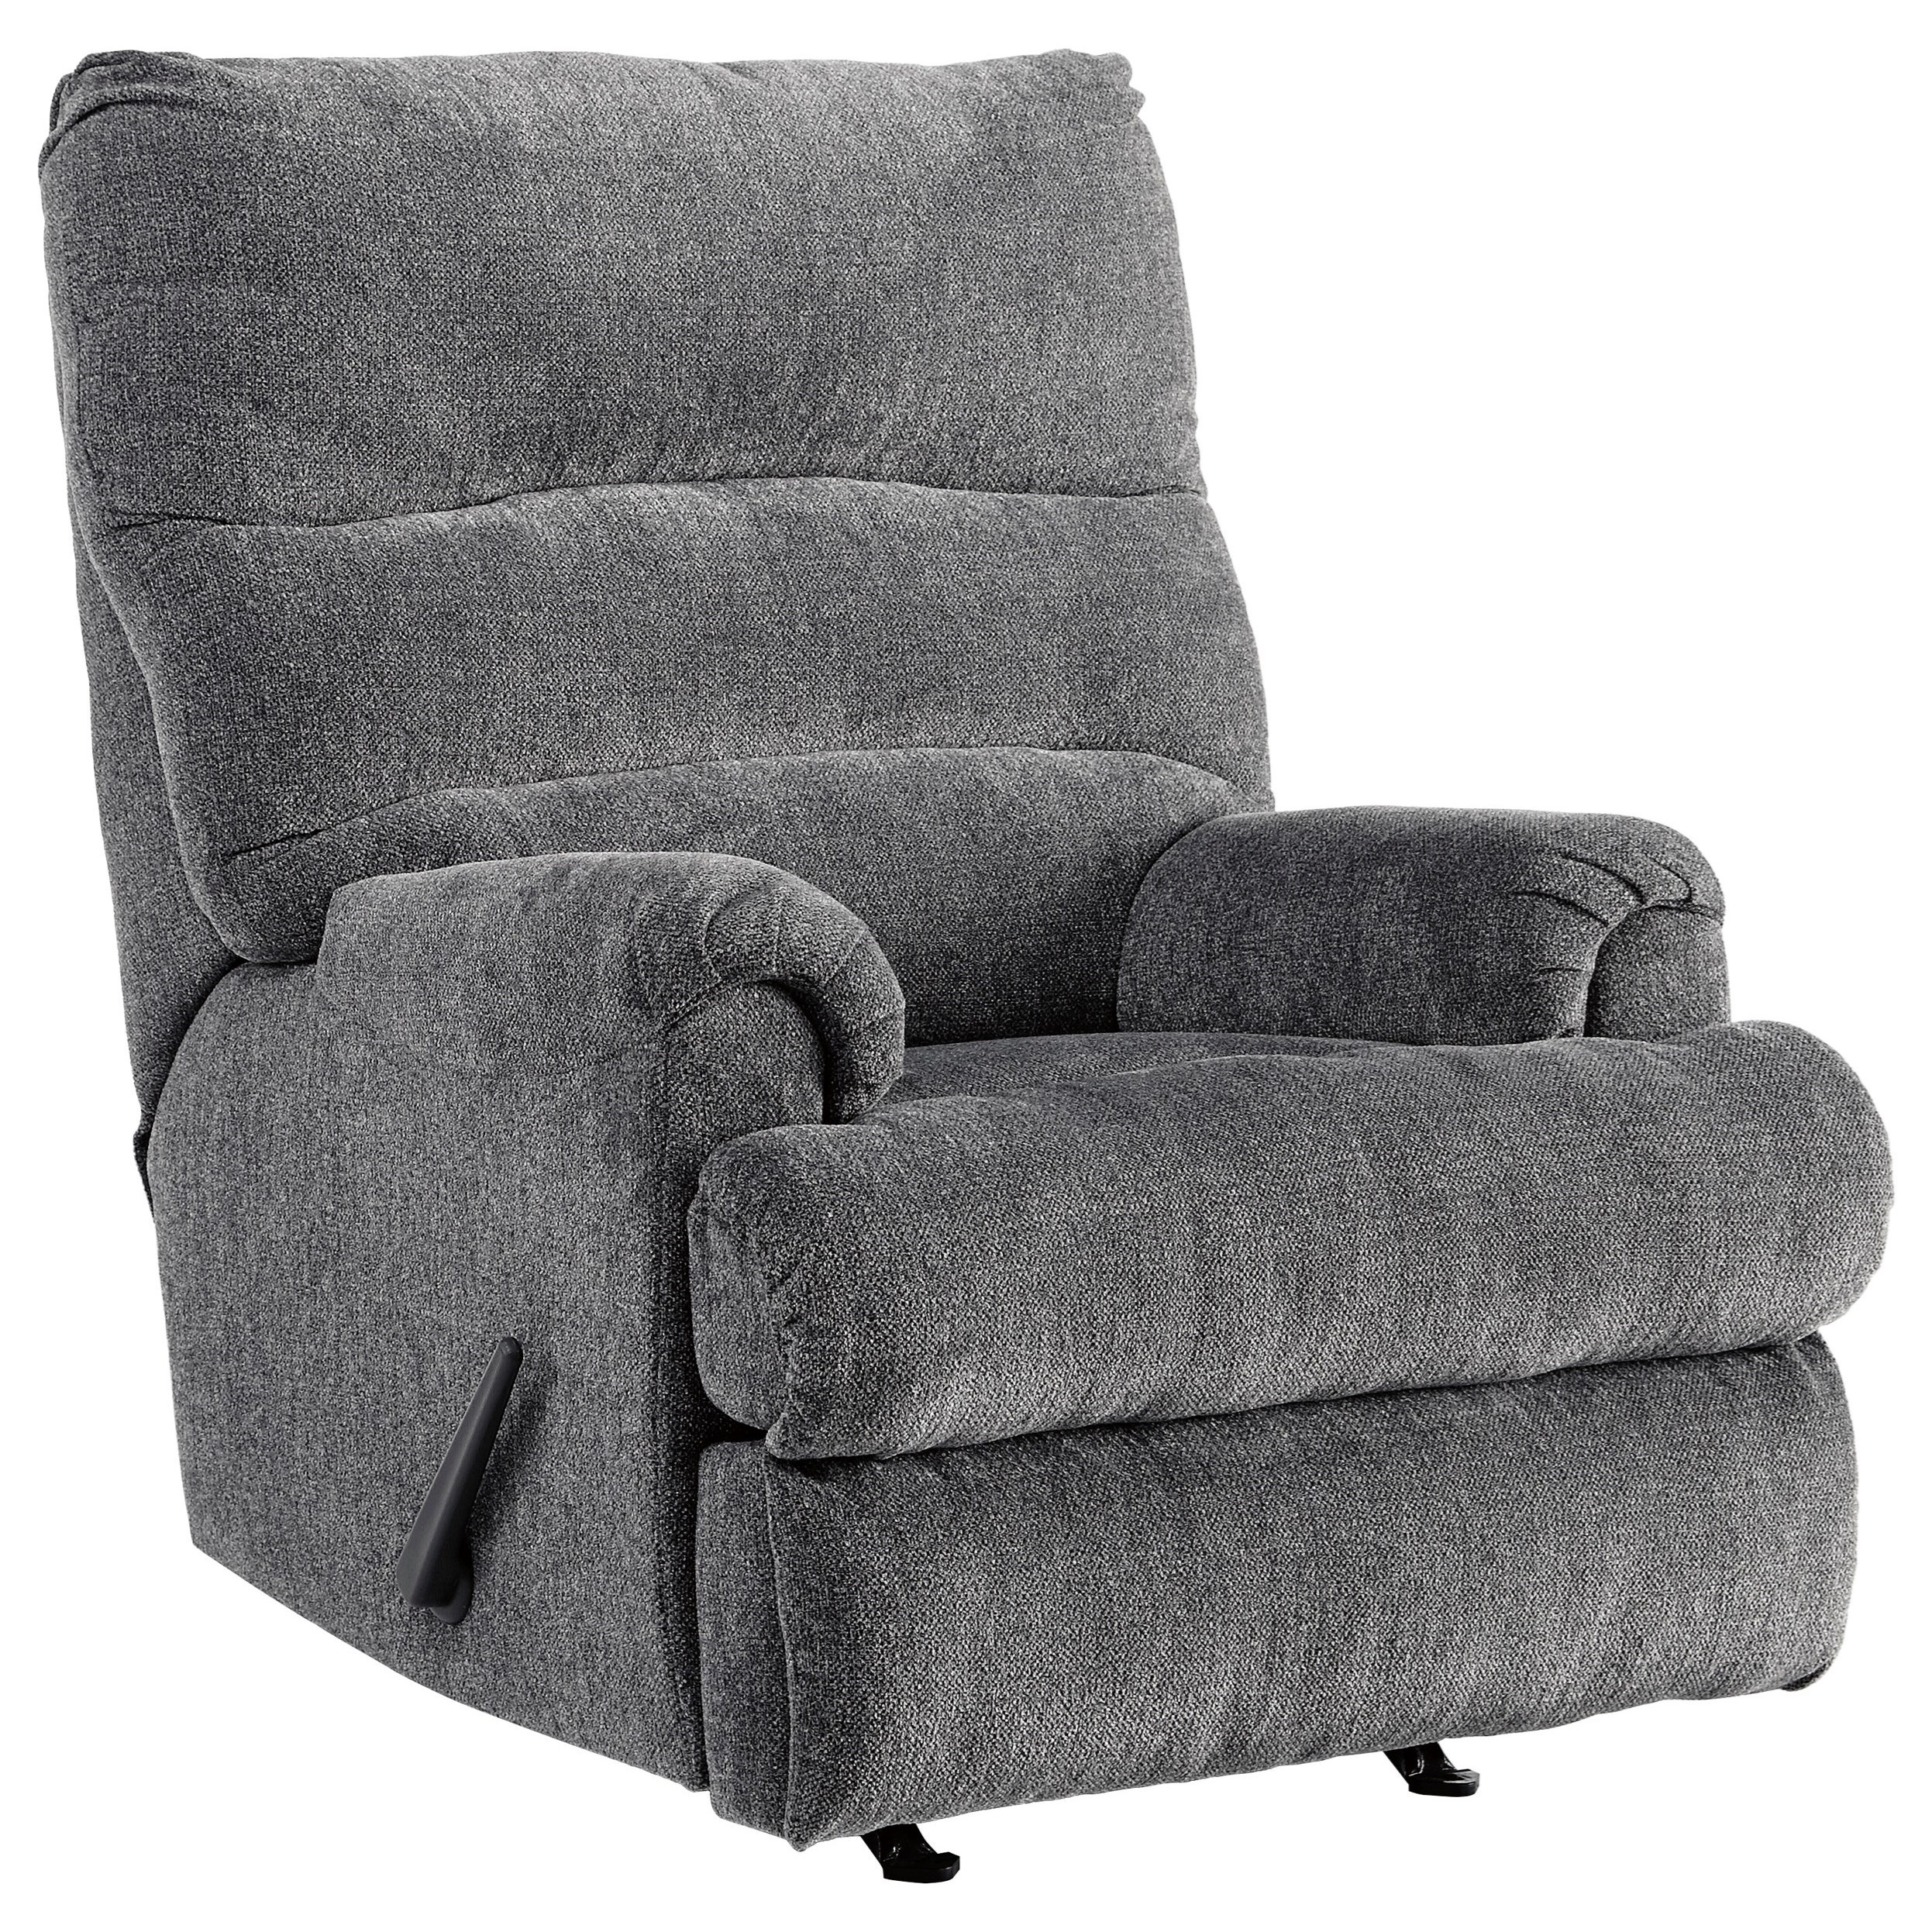 Man Fort Rocker Recliner by Ashley Signature Design at Rooms and Rest